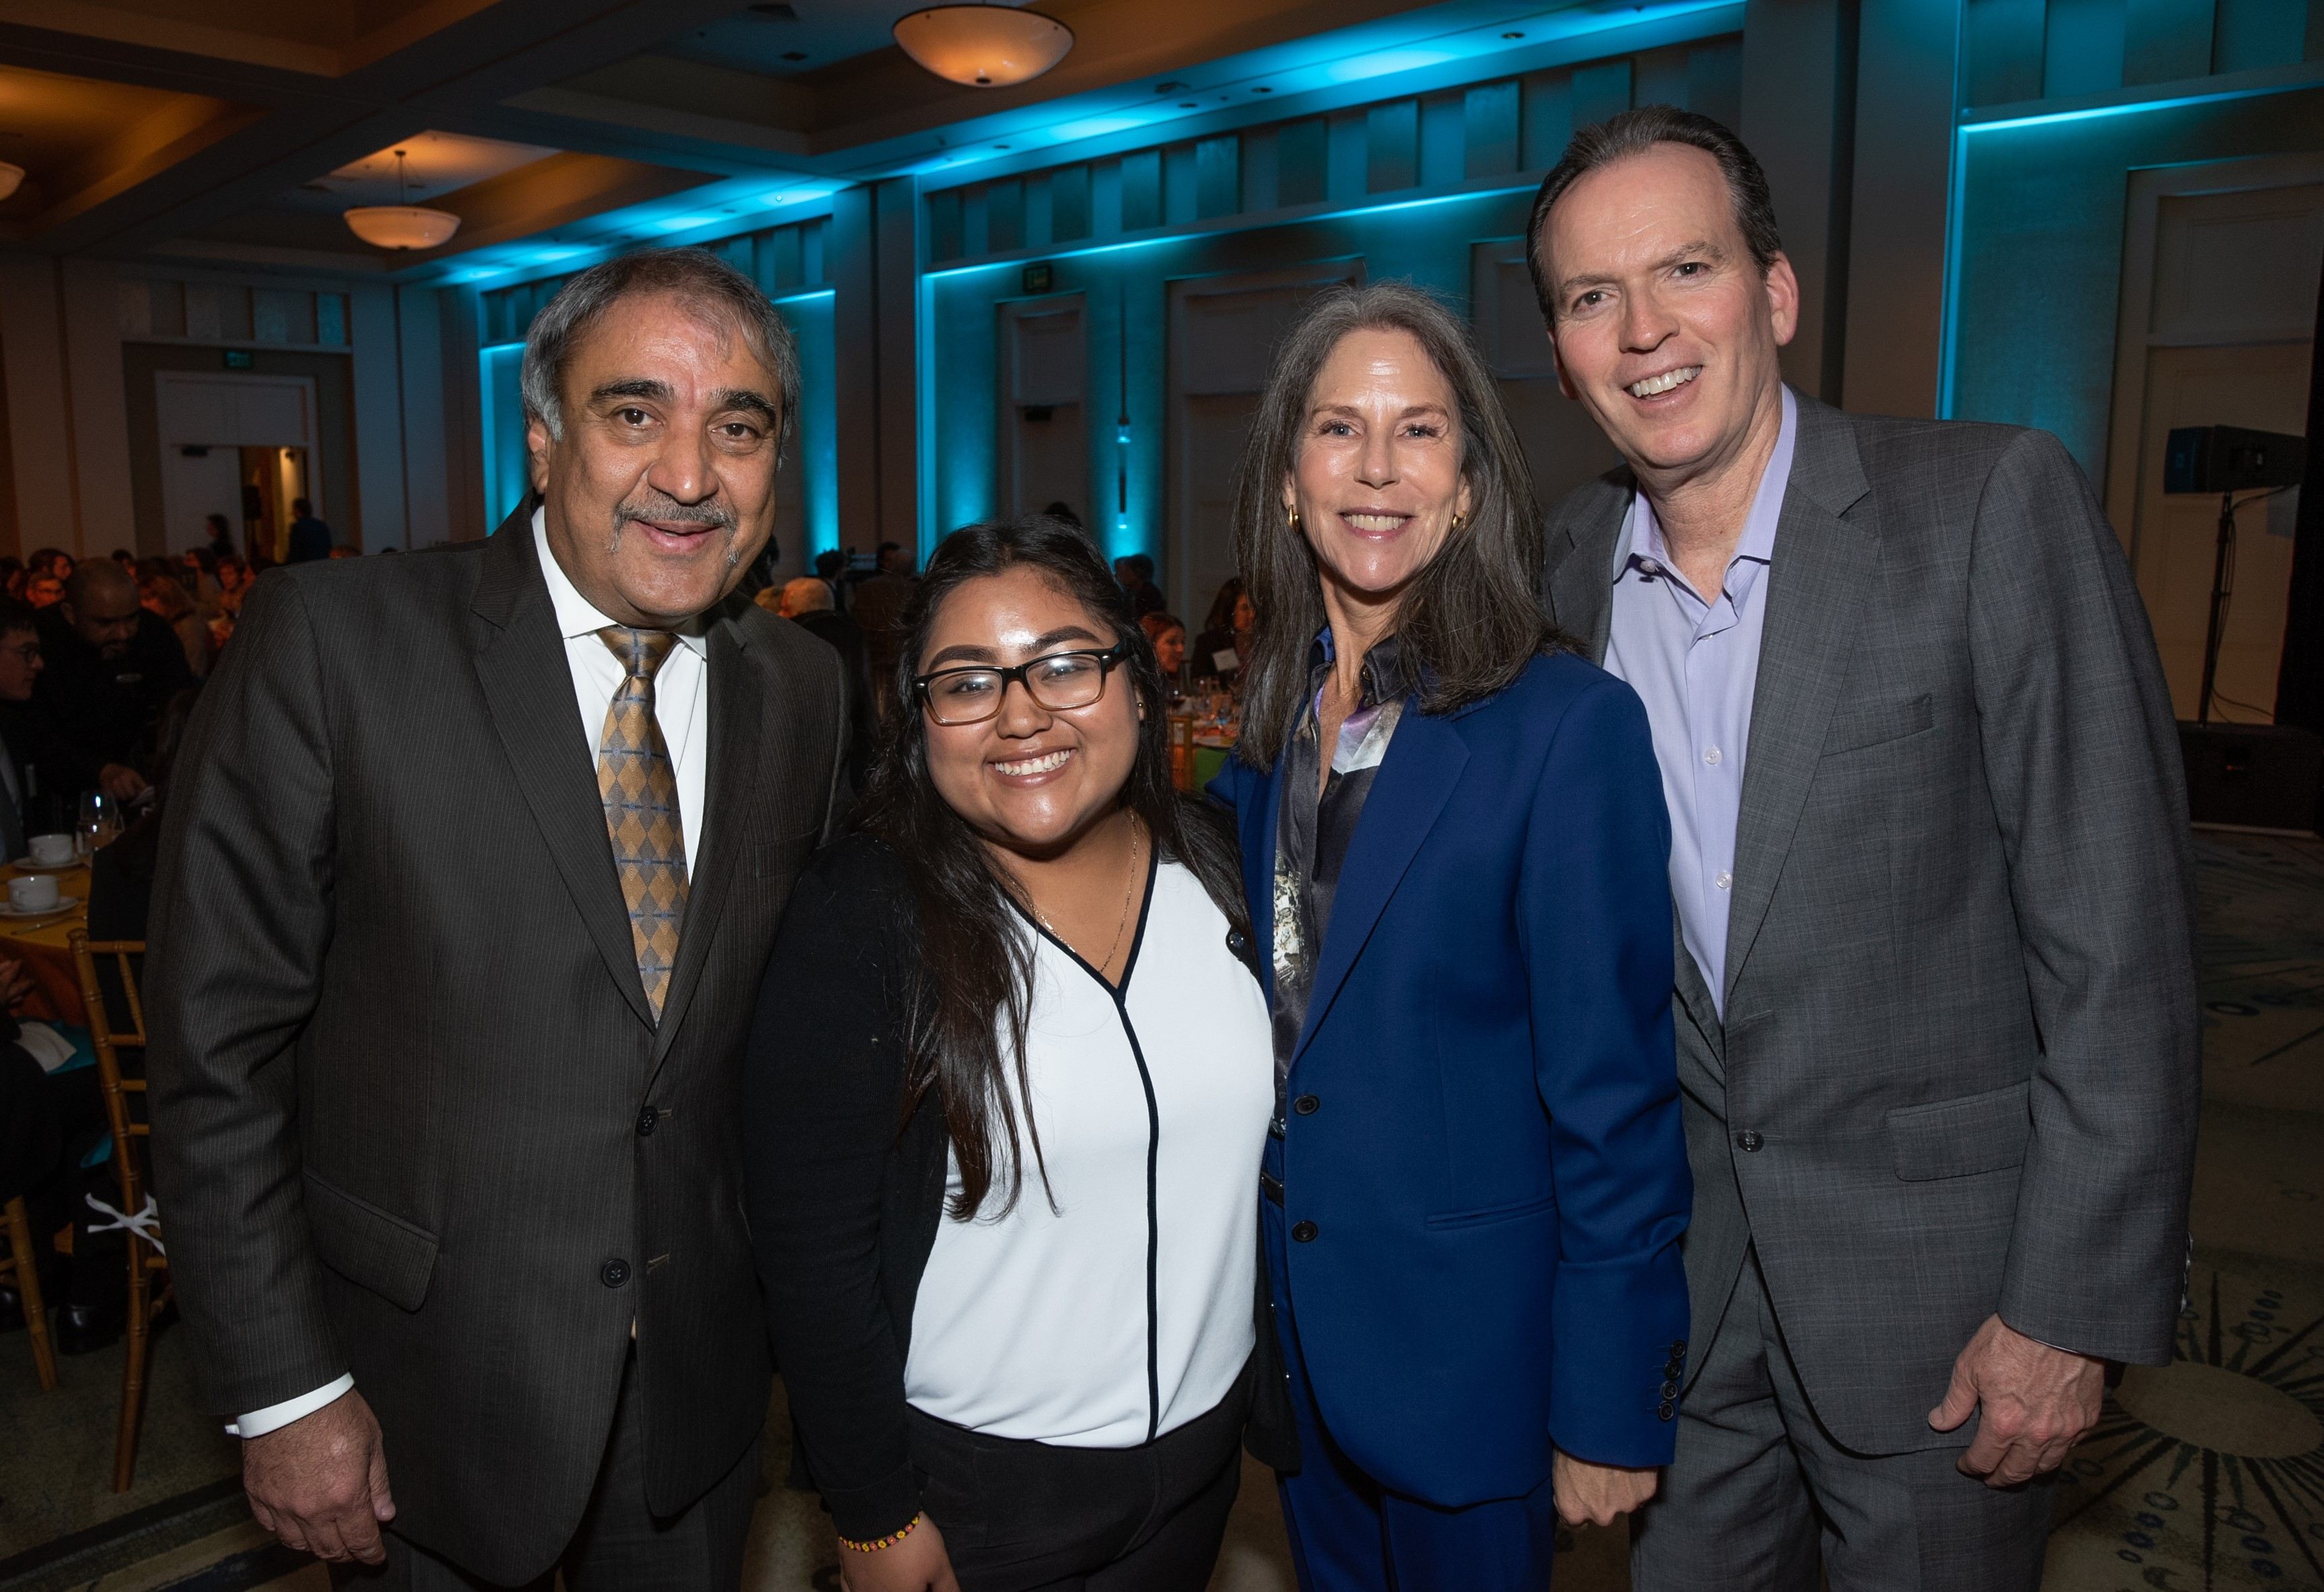 Chancellor Khosla; Nidya Preza Campos, Muir College '22; and Karen and Jeff Silberman at the 2020 Hearts and Scholars Dinner.